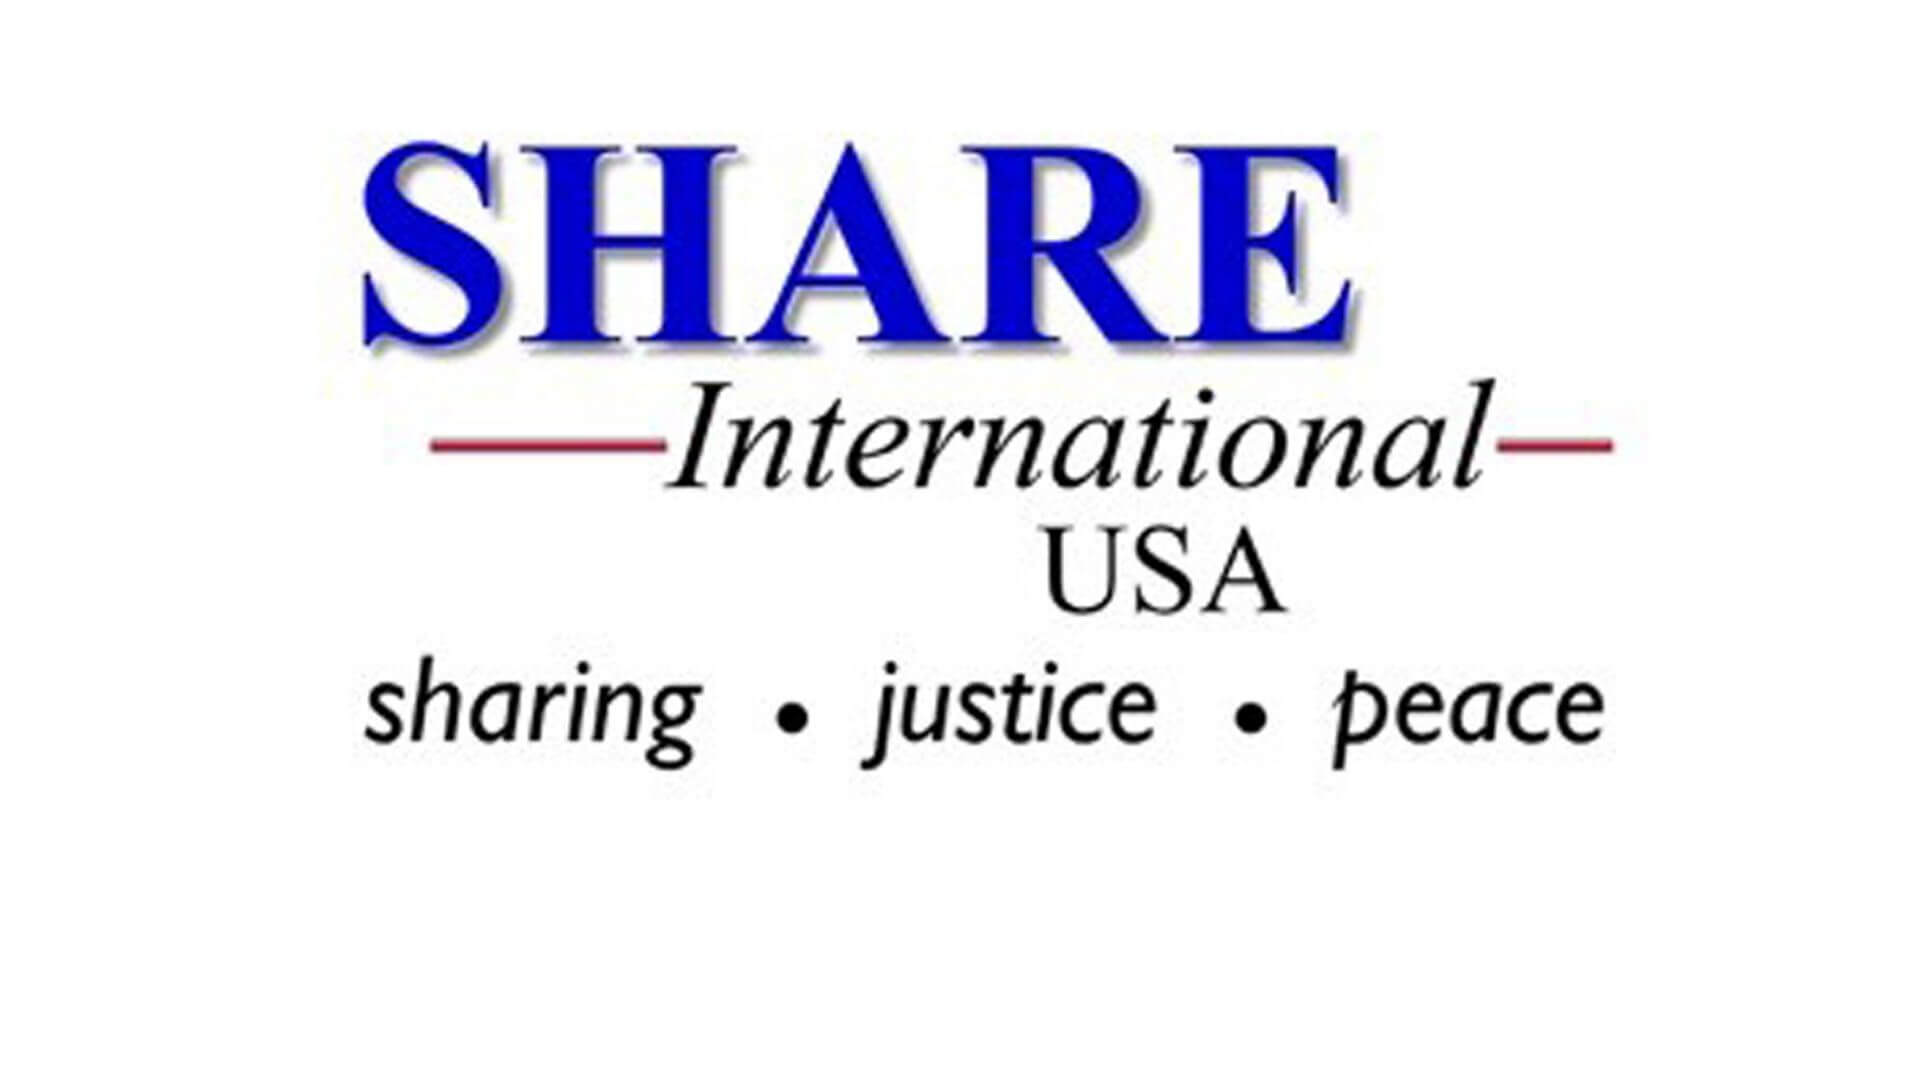 Share International USA